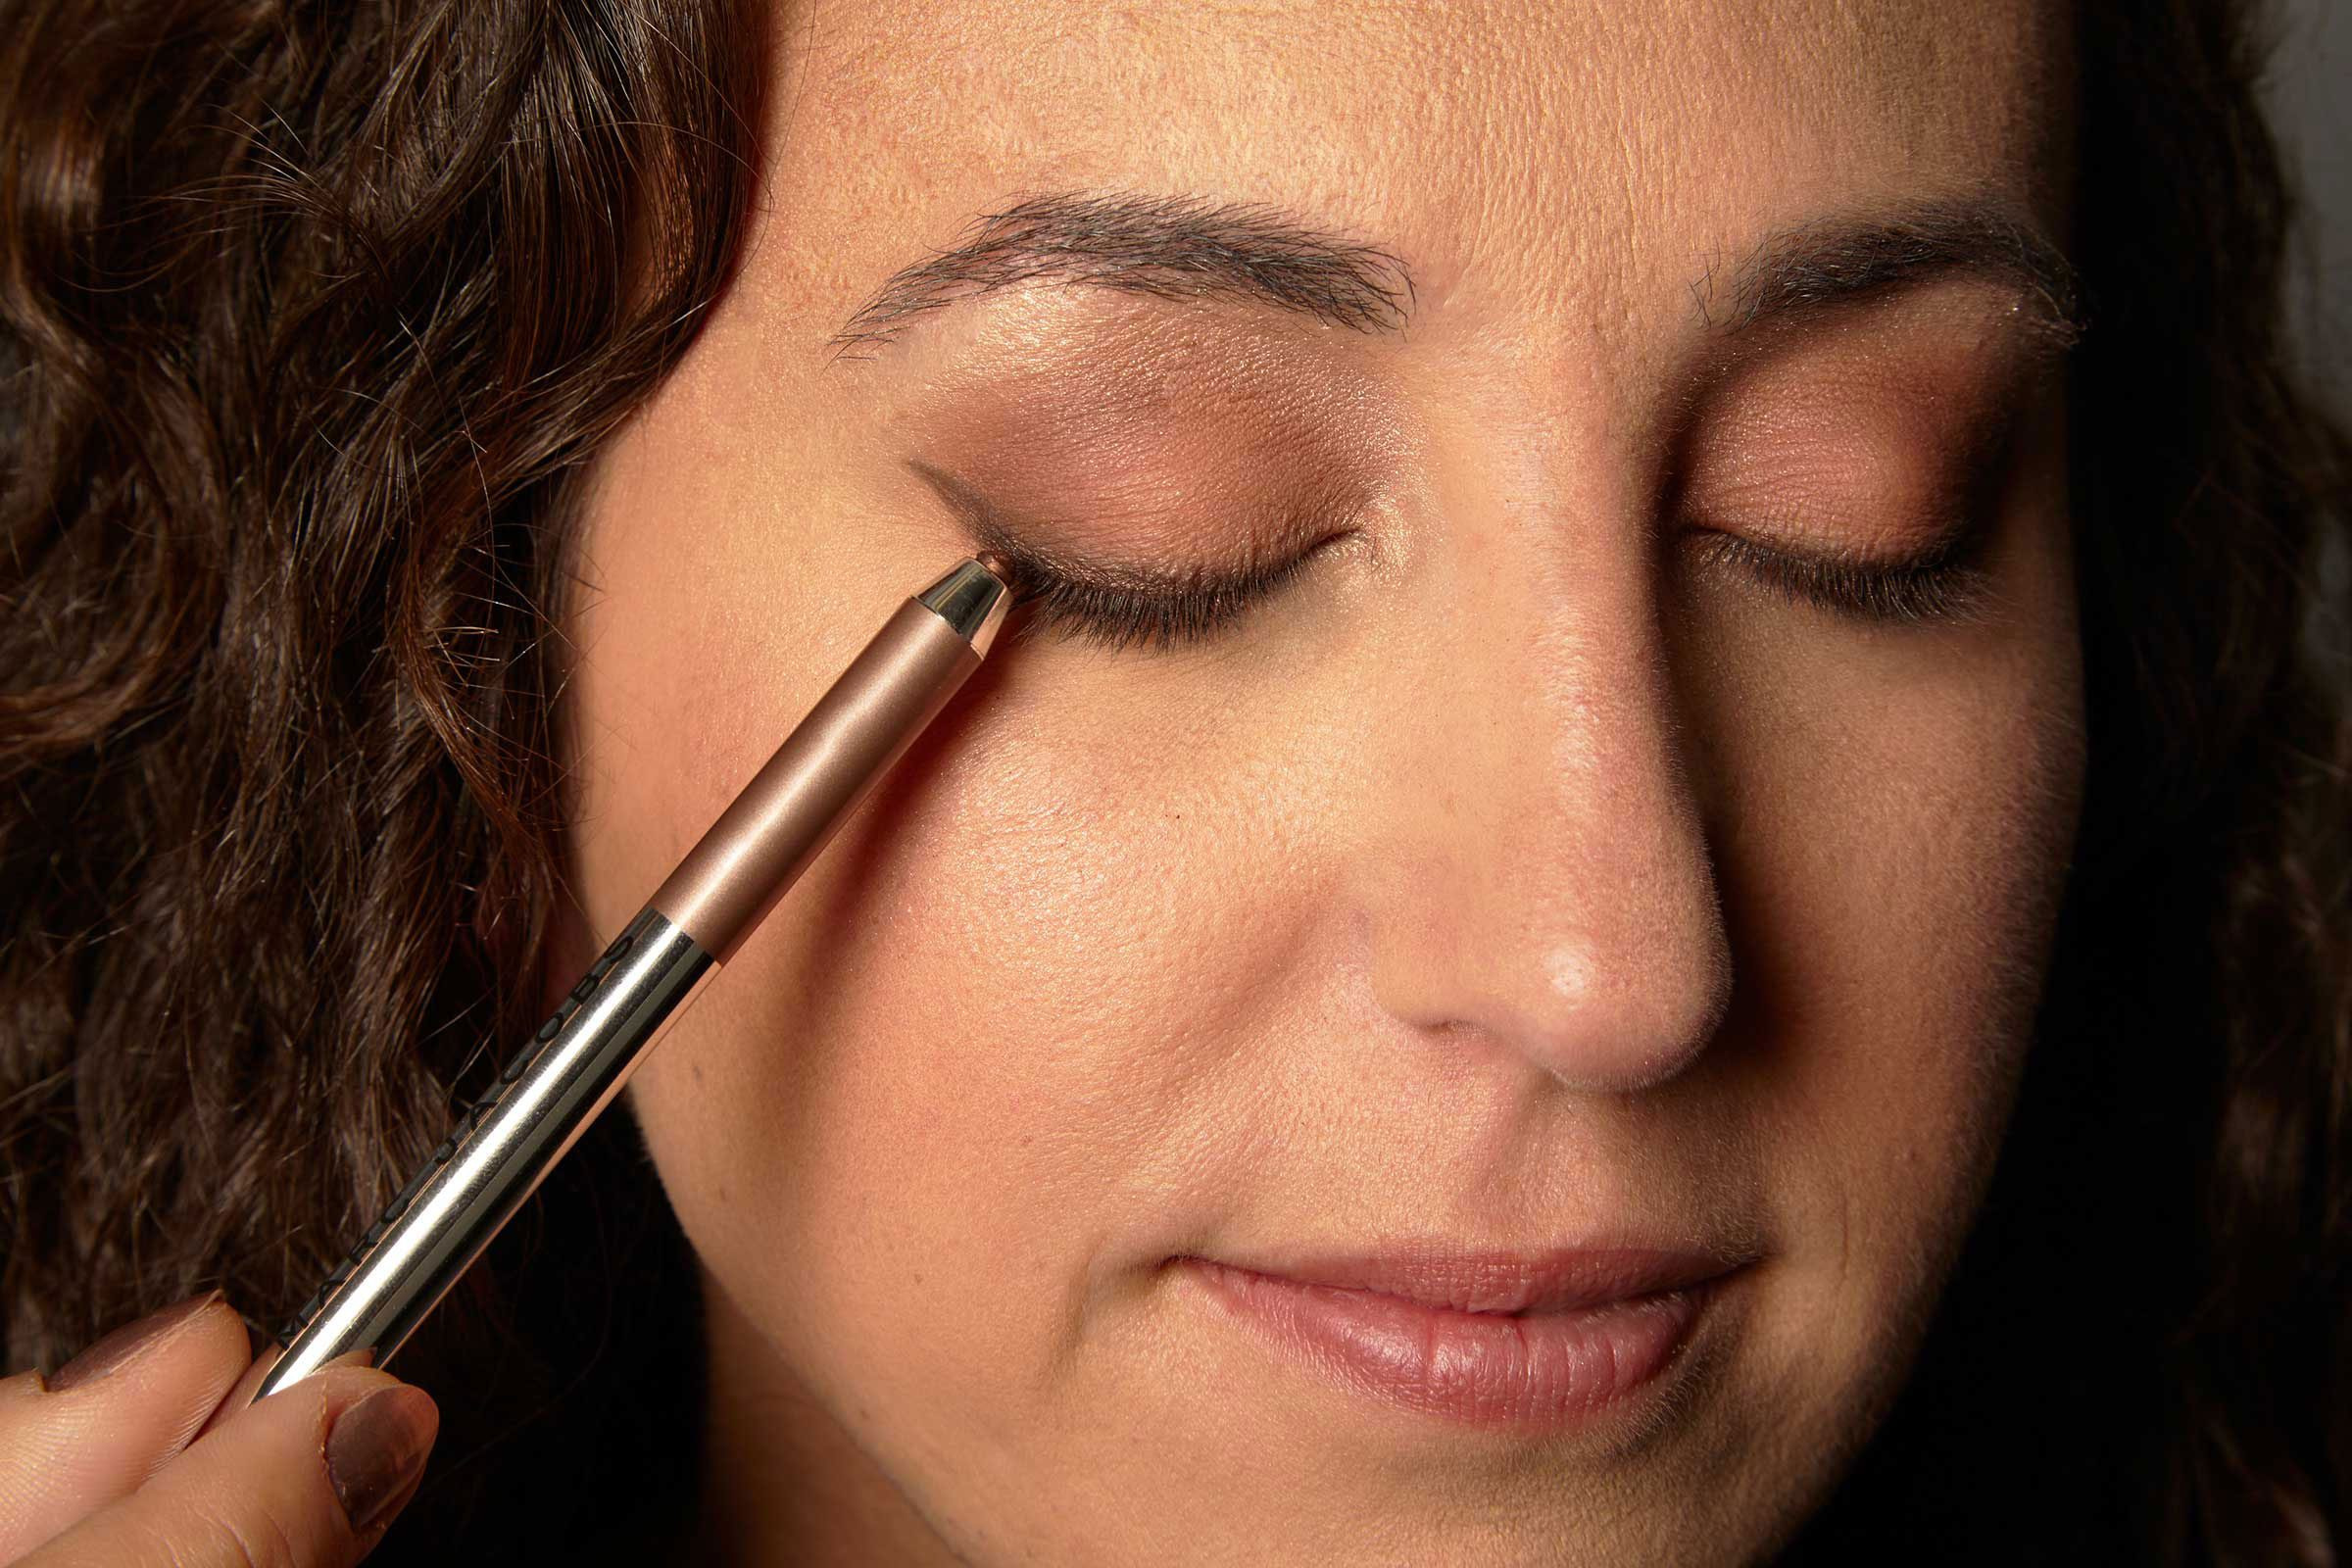 Make Eyes Look Bigger with Makeup | Reader's Digest